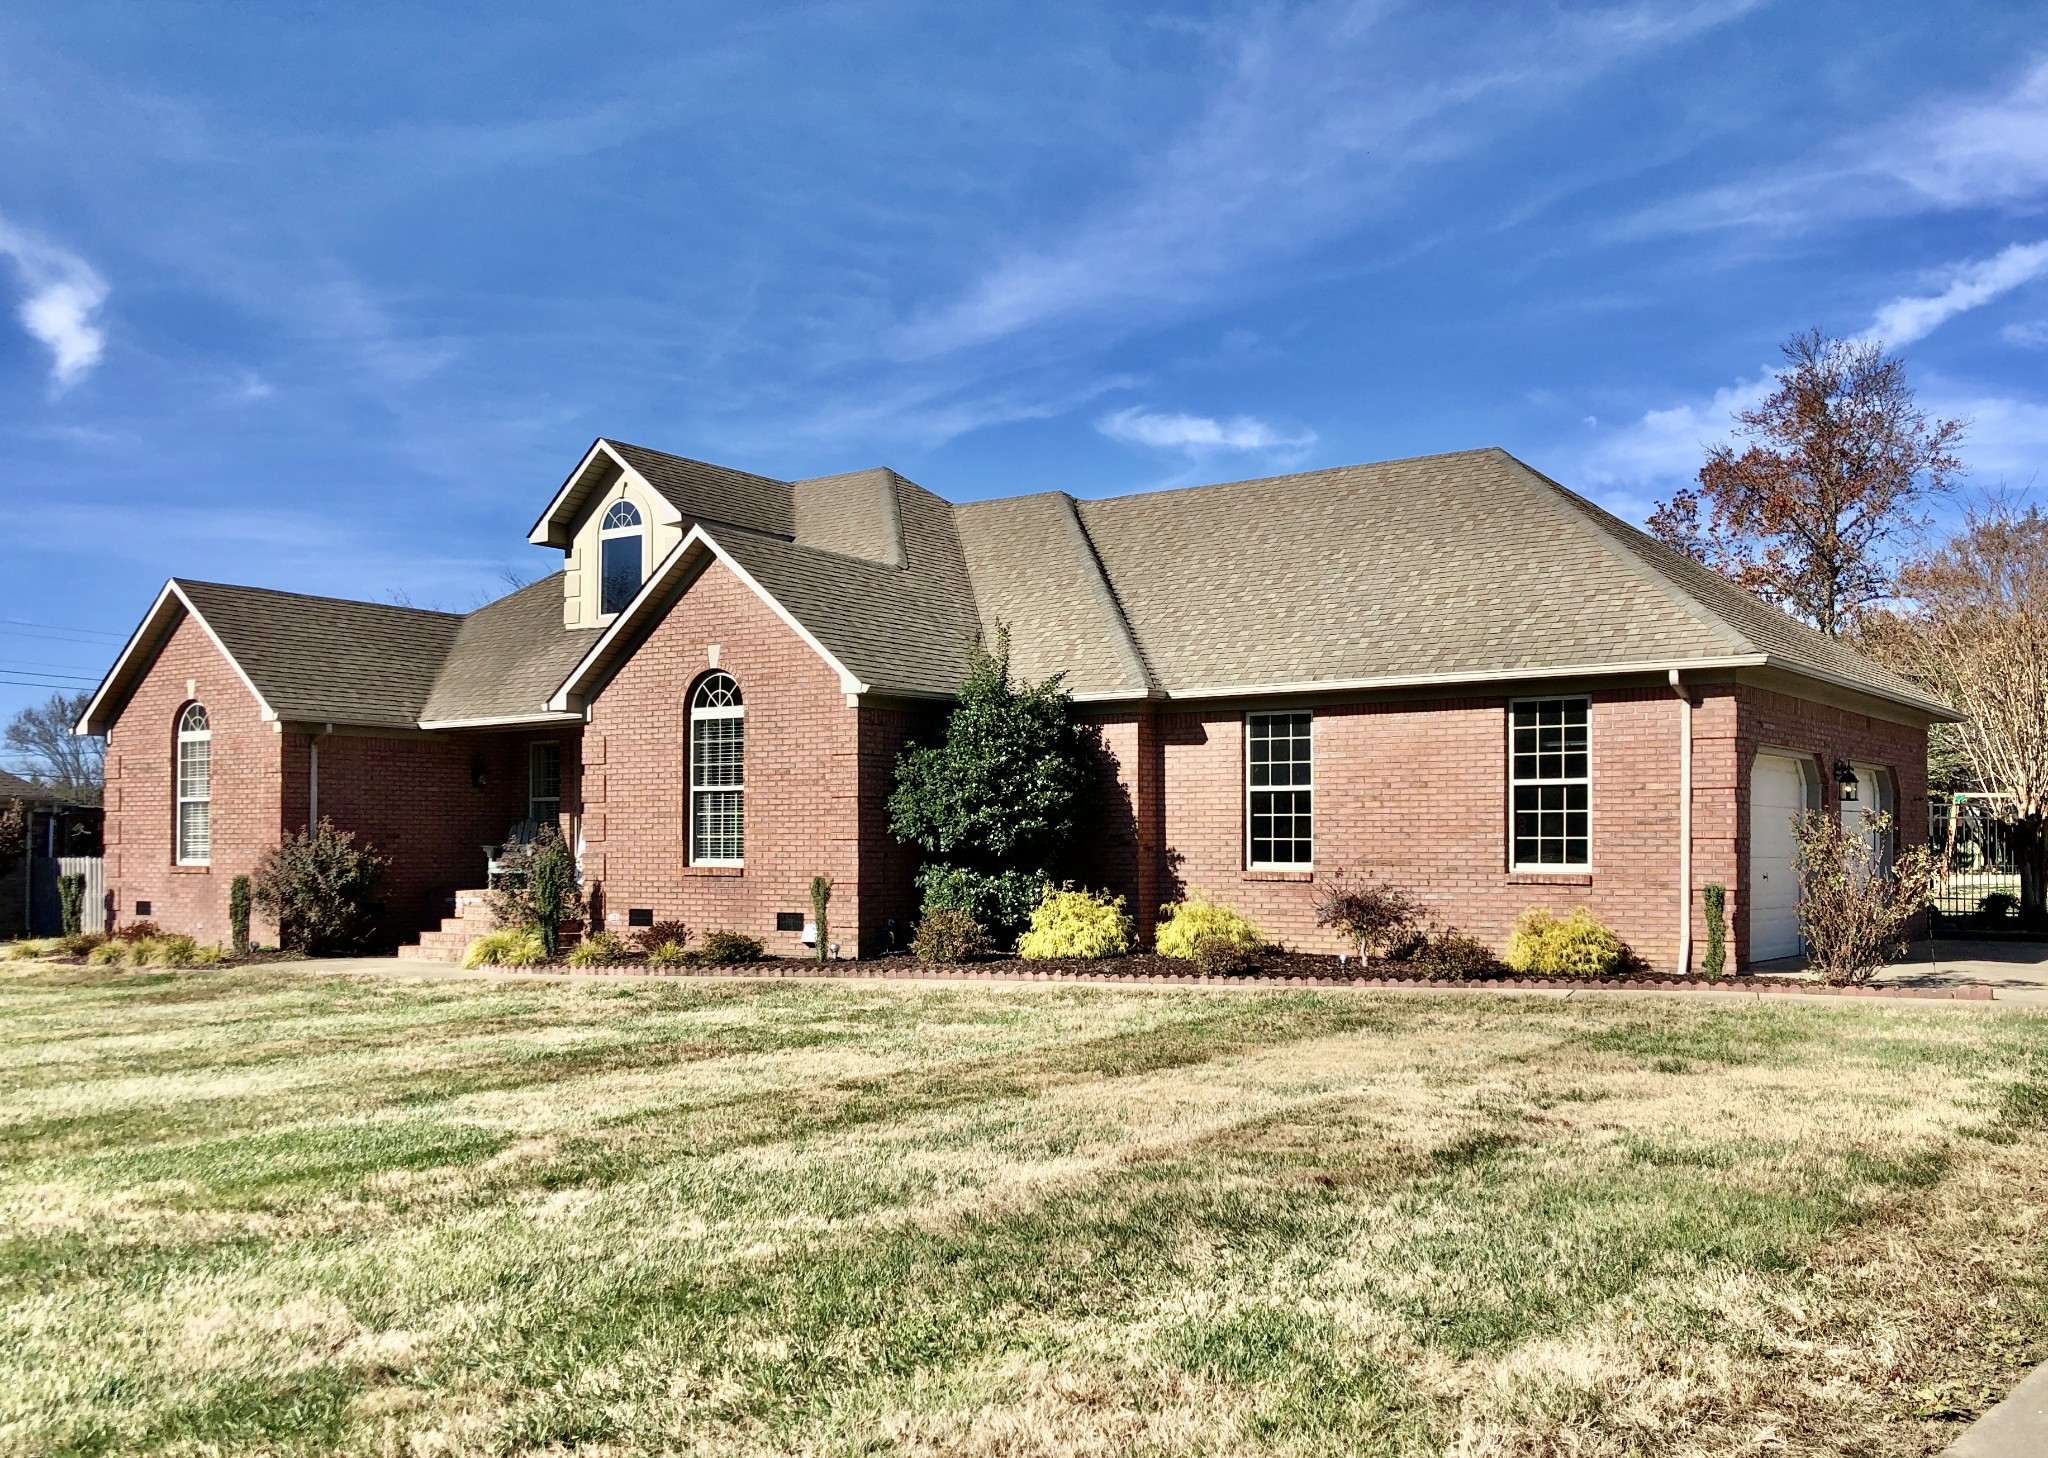 410 Weakley Creek Rd, Lawrenceburg, TN 38464 - Lawrenceburg, TN real estate listing